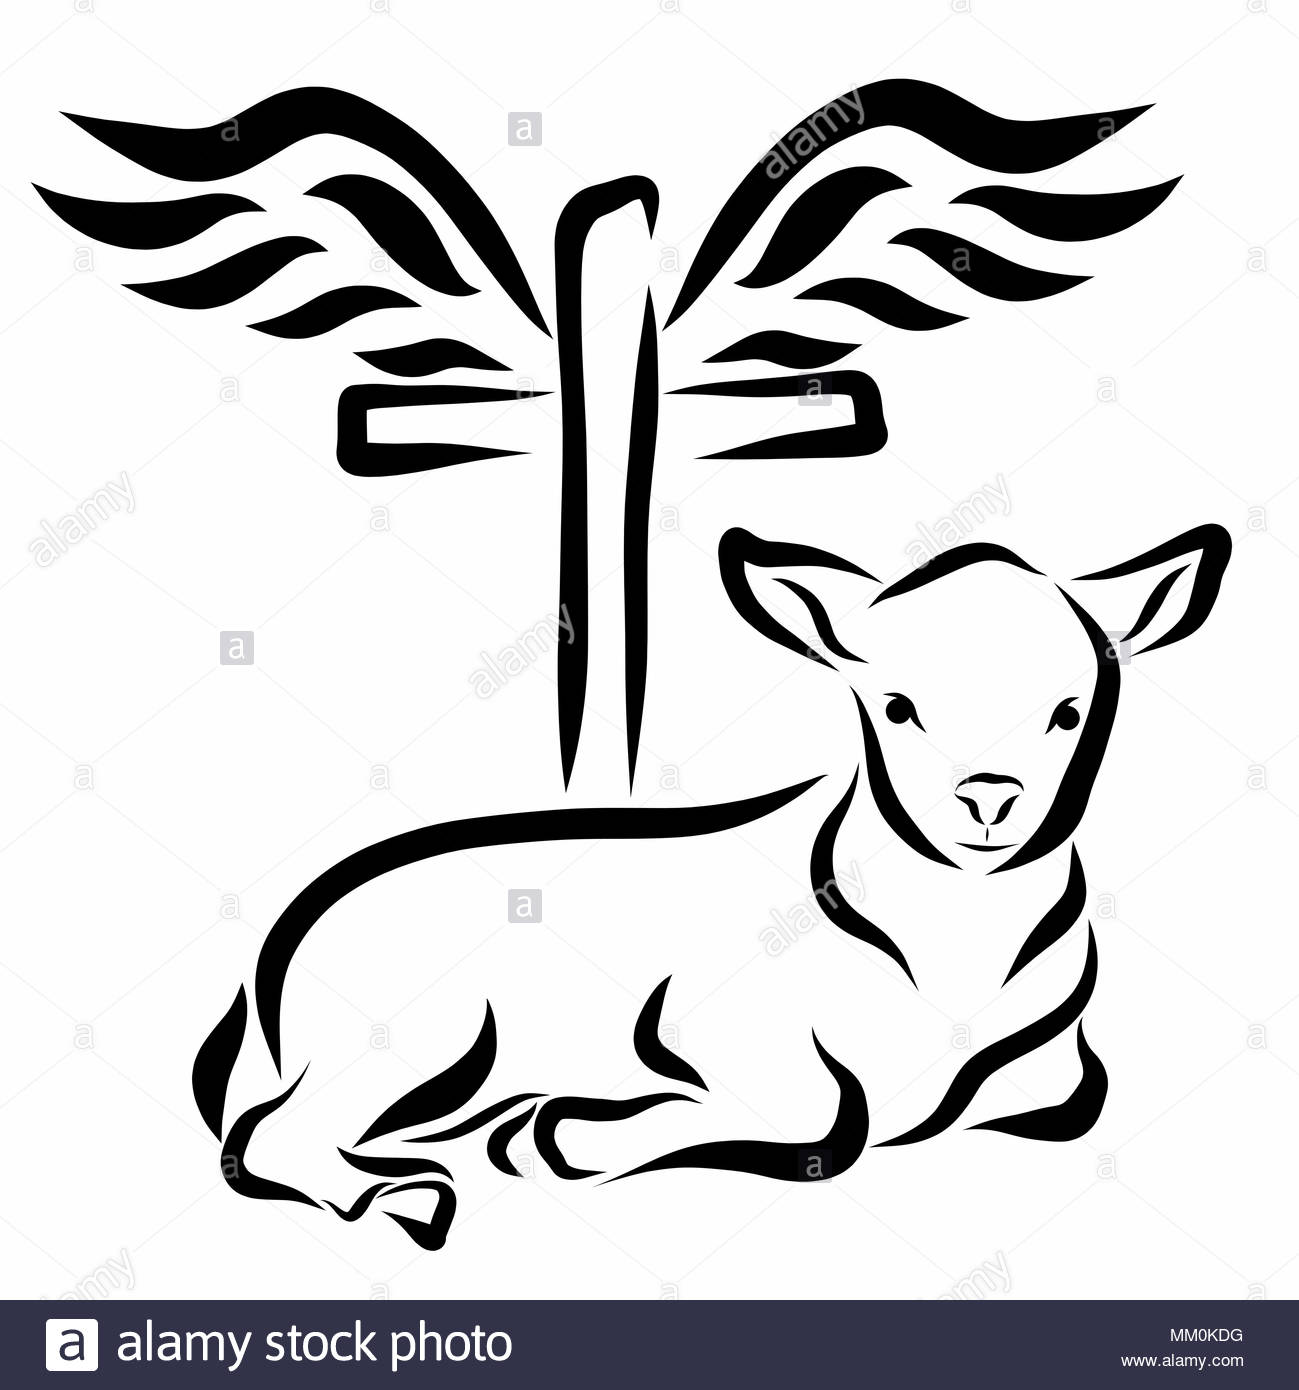 A Calm Lamb Lying In Front Of A Cross With Wings Stock Photo